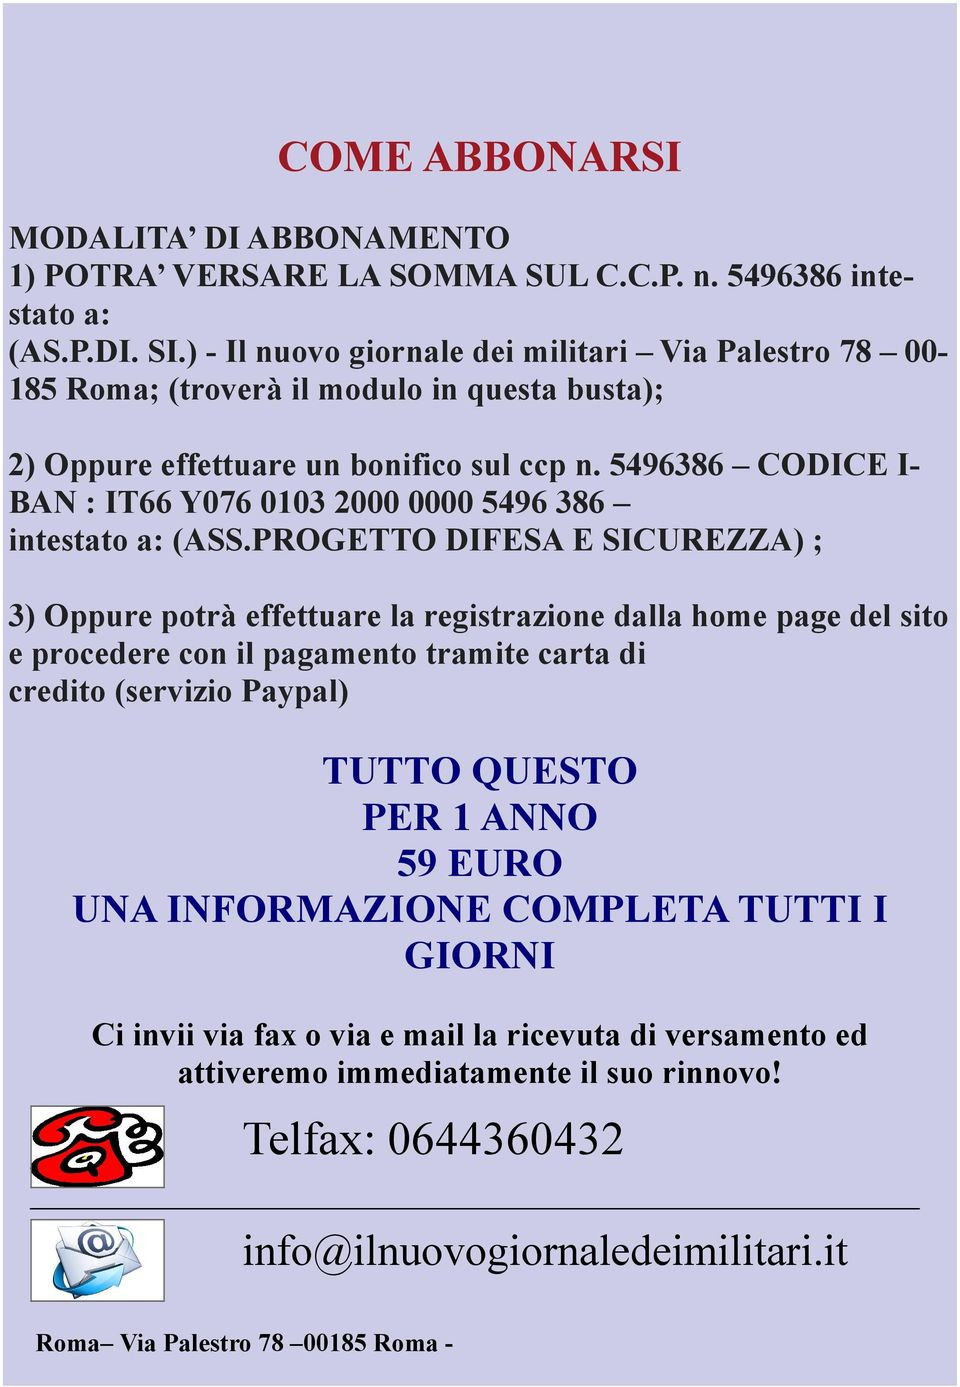 5496386 CODICE I- BAN : IT66 Y076 0103 2000 0000 5496 386 intestato a: (ASS.